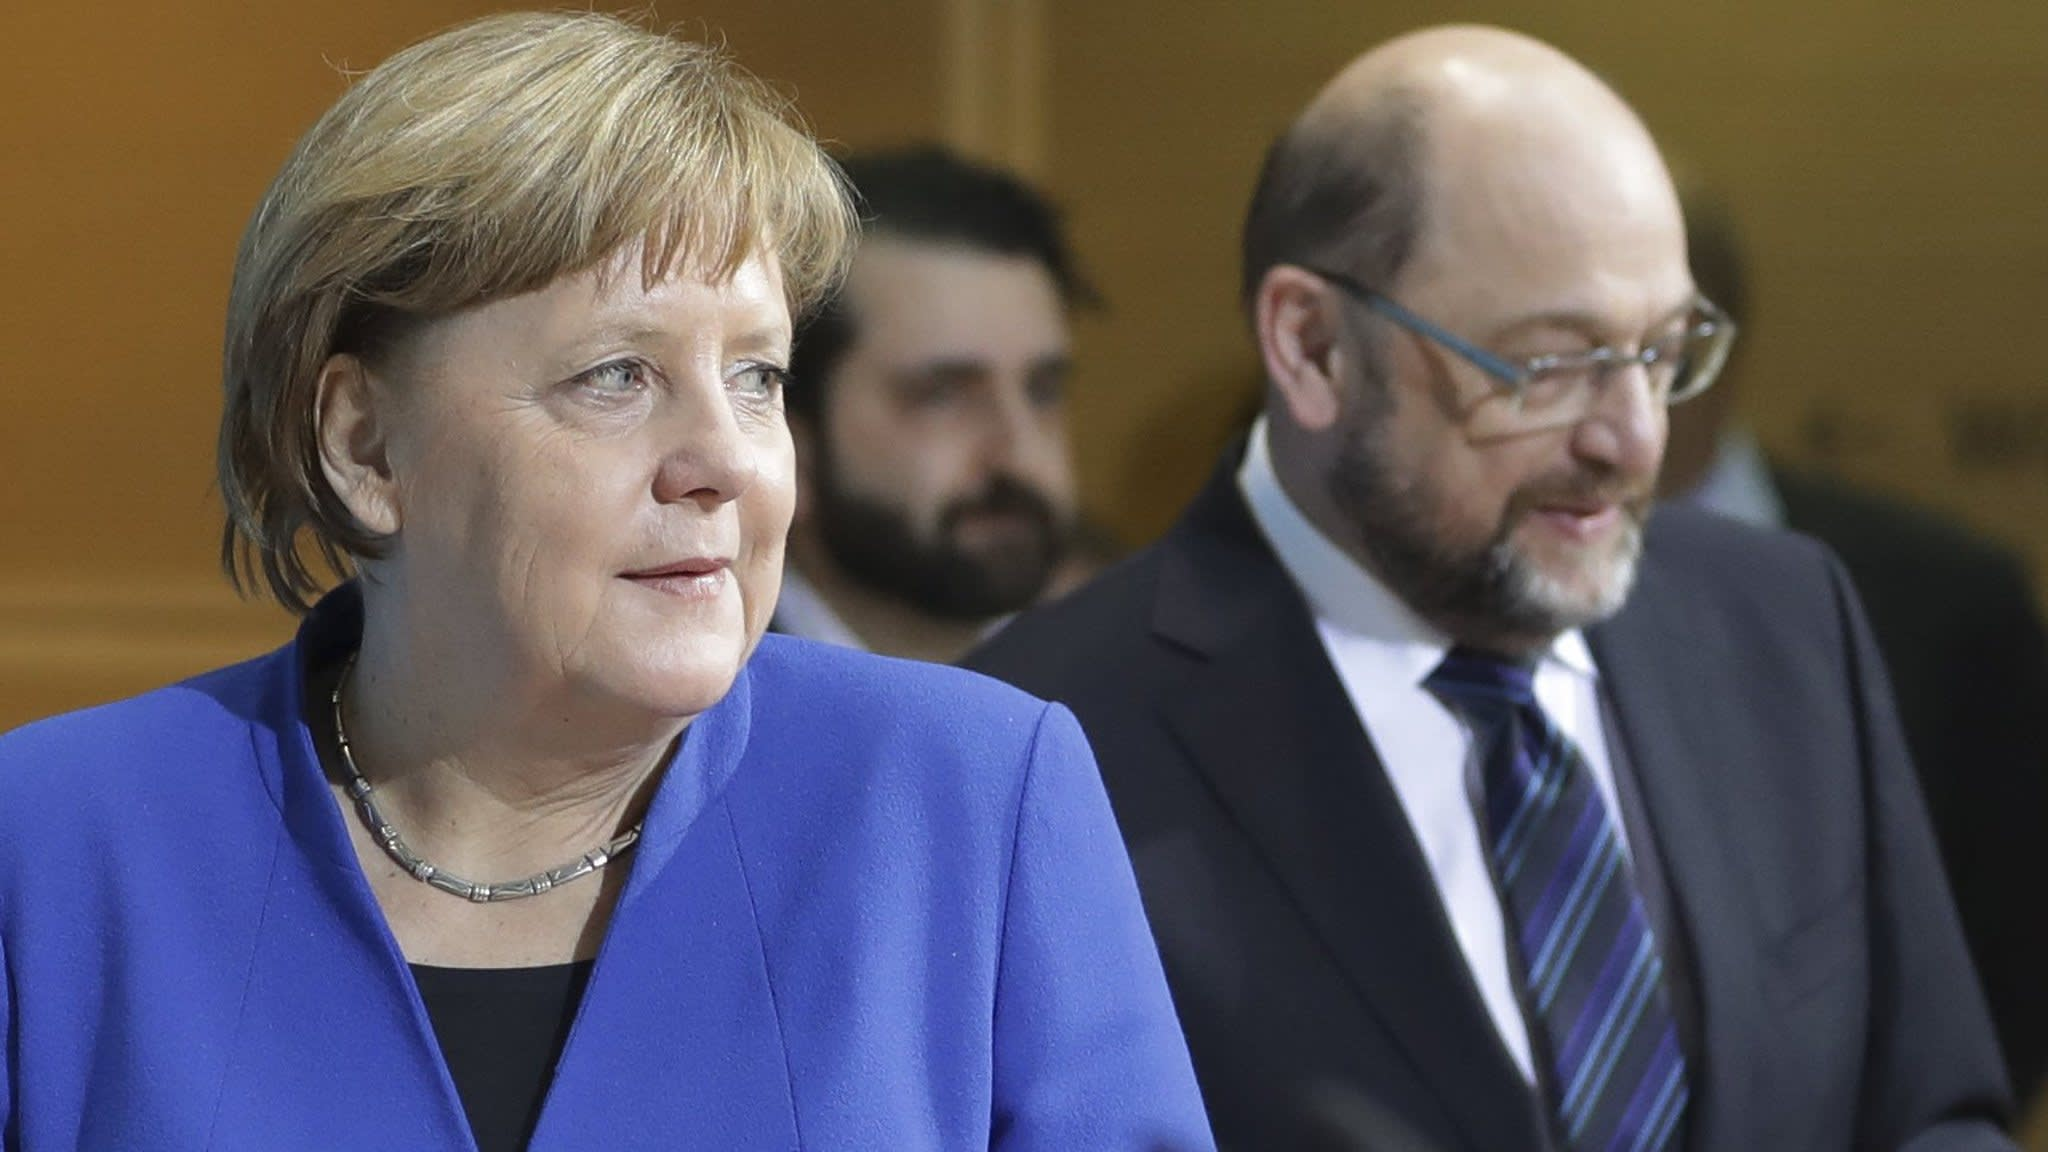 Merkel reaches coalition deal with Germany's Social Democrats